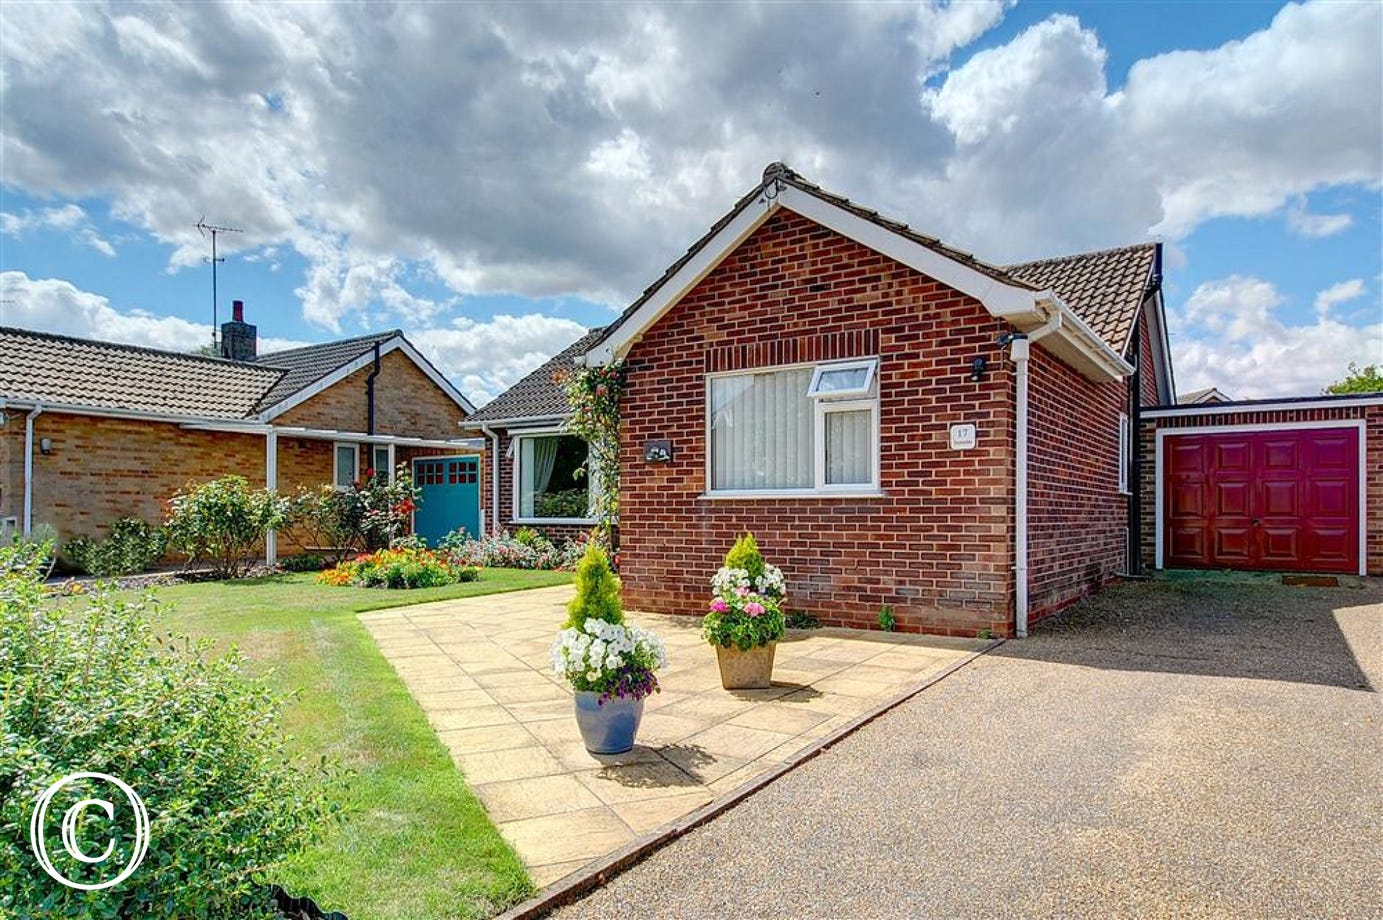 Sunsette is a comfy homely bungalow situated in the charming village of Reydon, within close proximity to Southwold and sleeps 4.